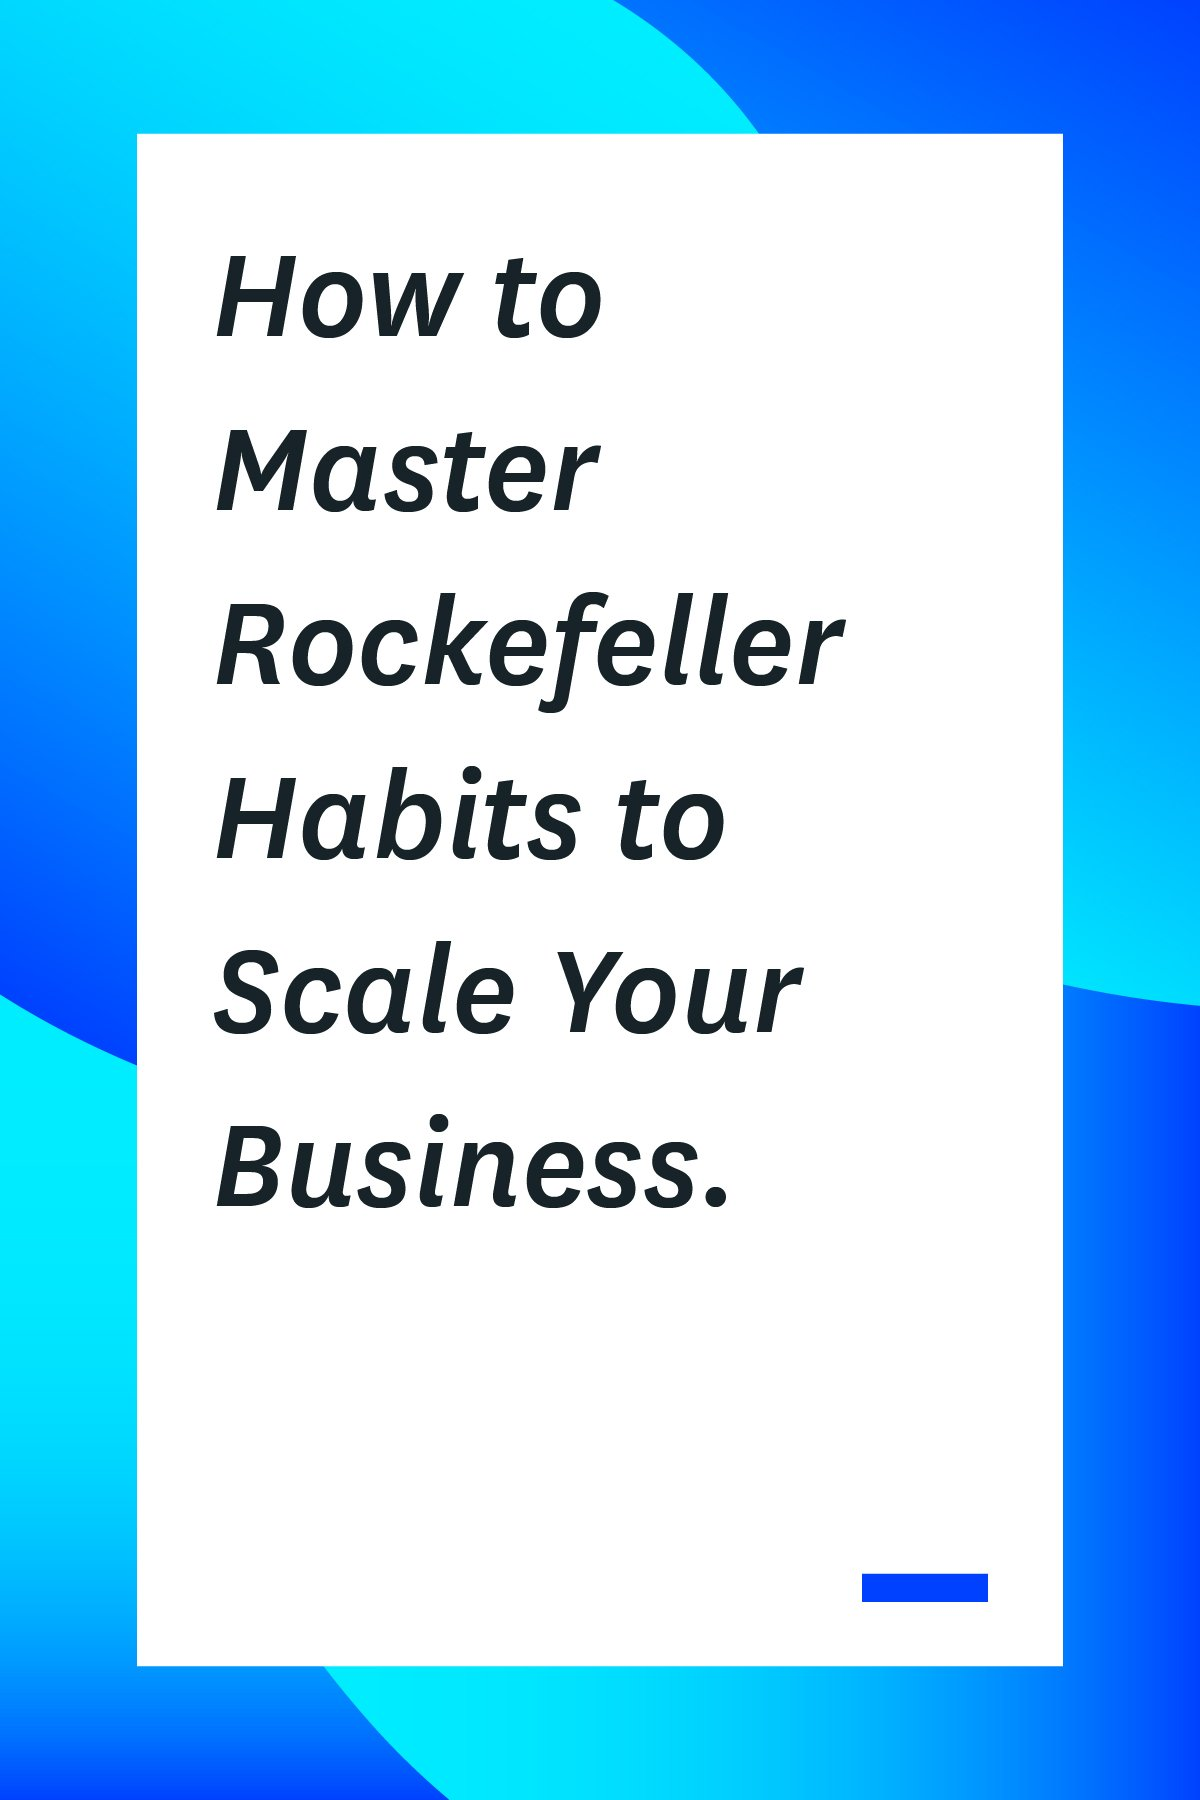 Rockefeller habits are 10 easy-to-implement habits that will improve productivity and company culture for your team. Learn more about them here.